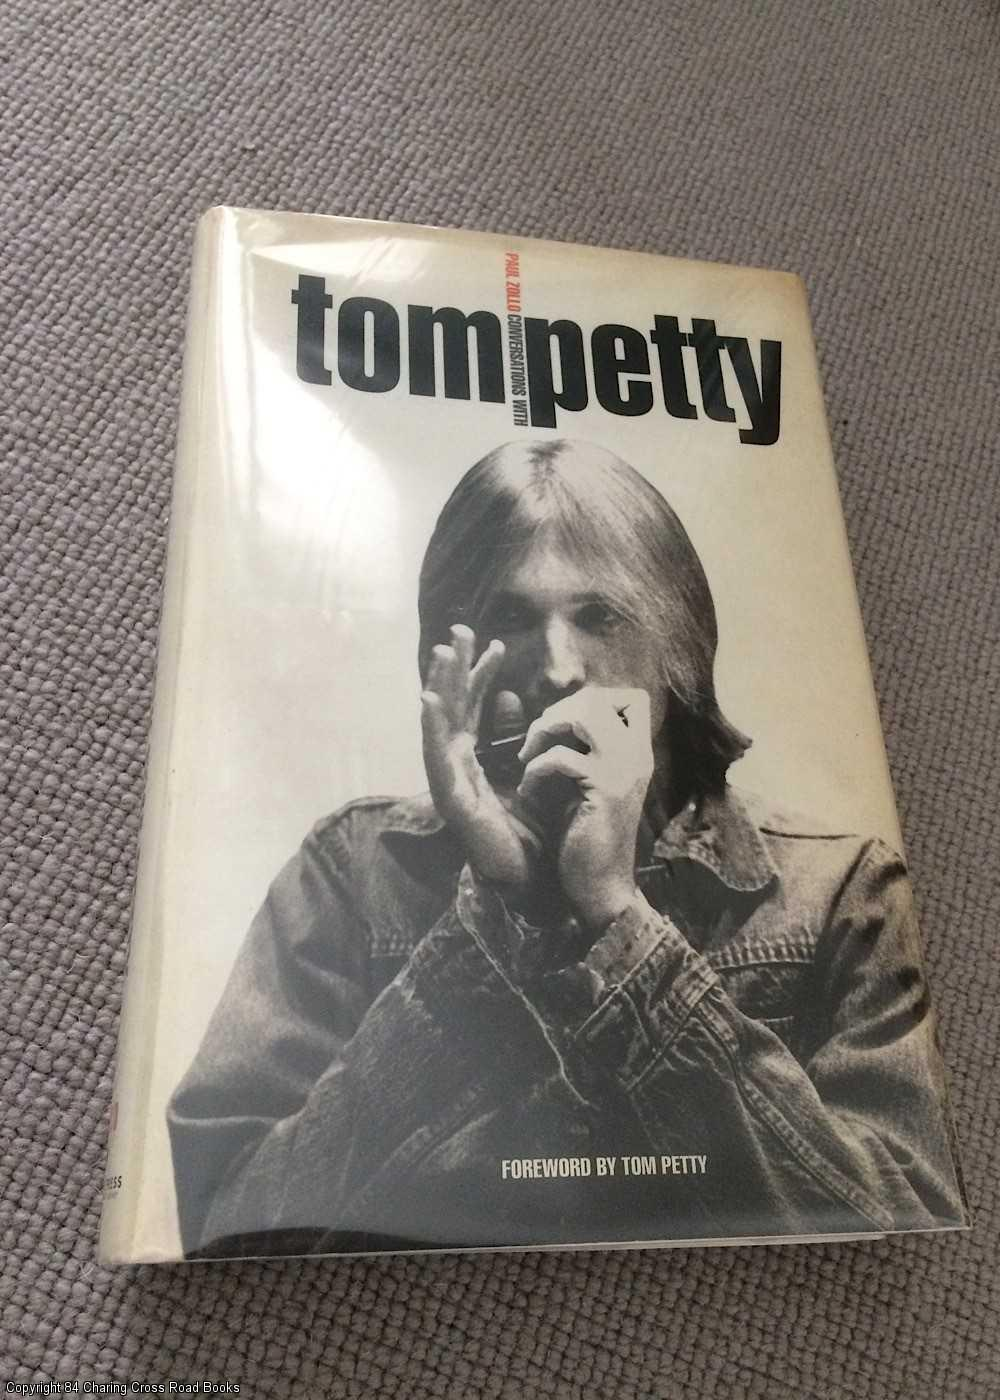 ZOLLO, PAUL - Conversations with Tom Petty